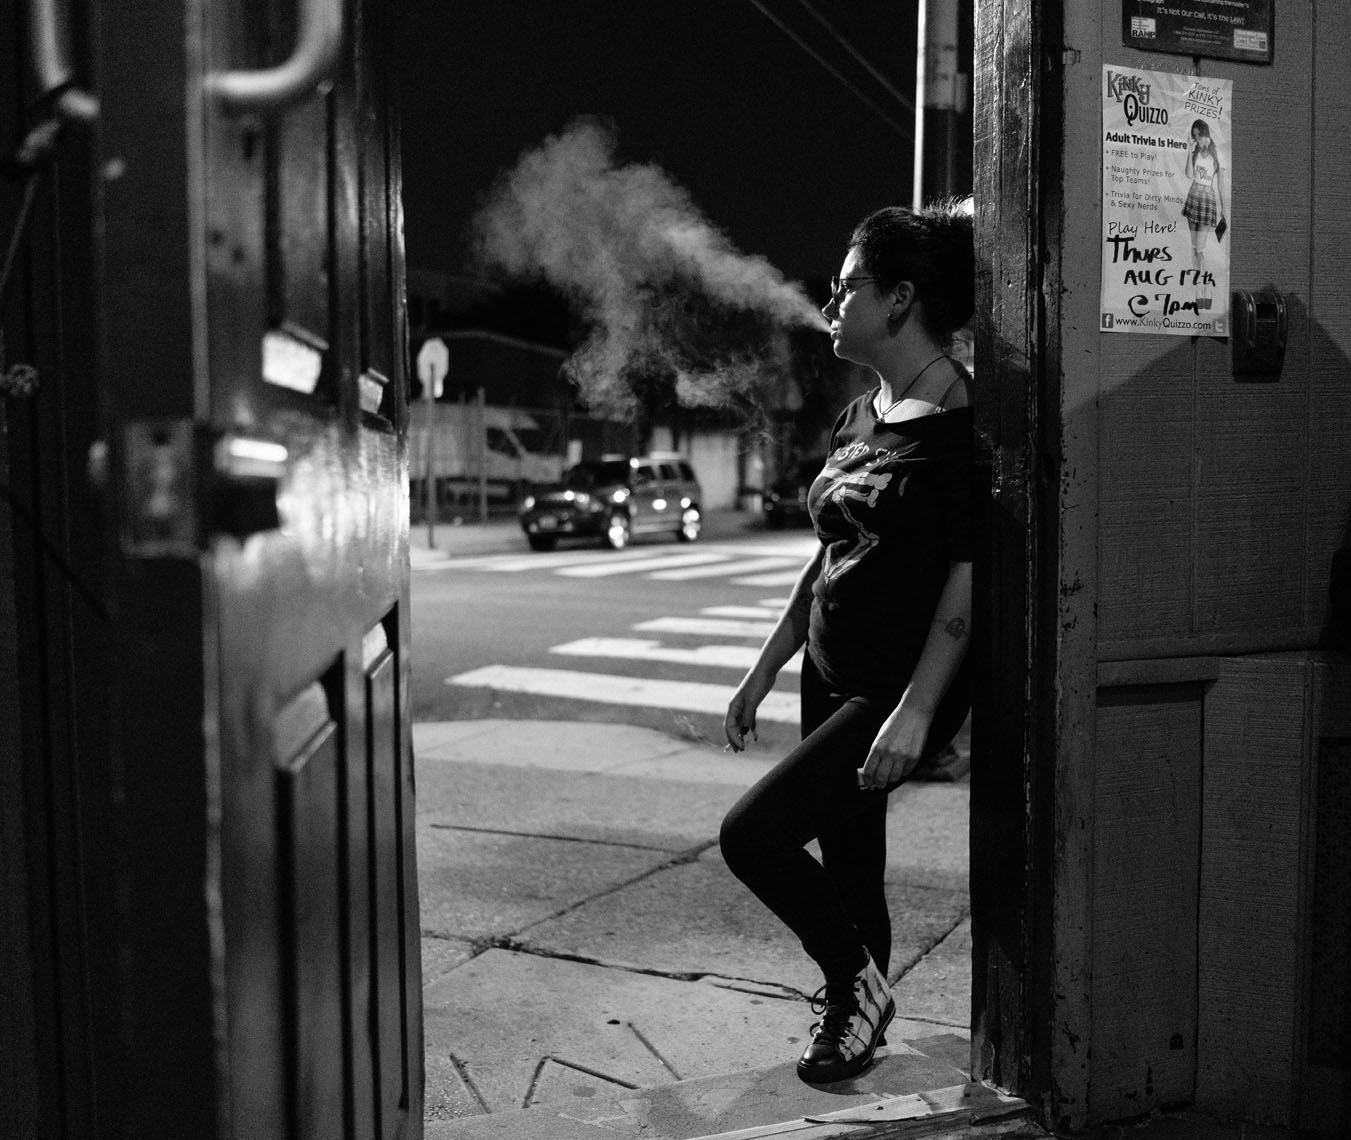 Philadelphia dive bar with young female silhouette smoking in the door frame